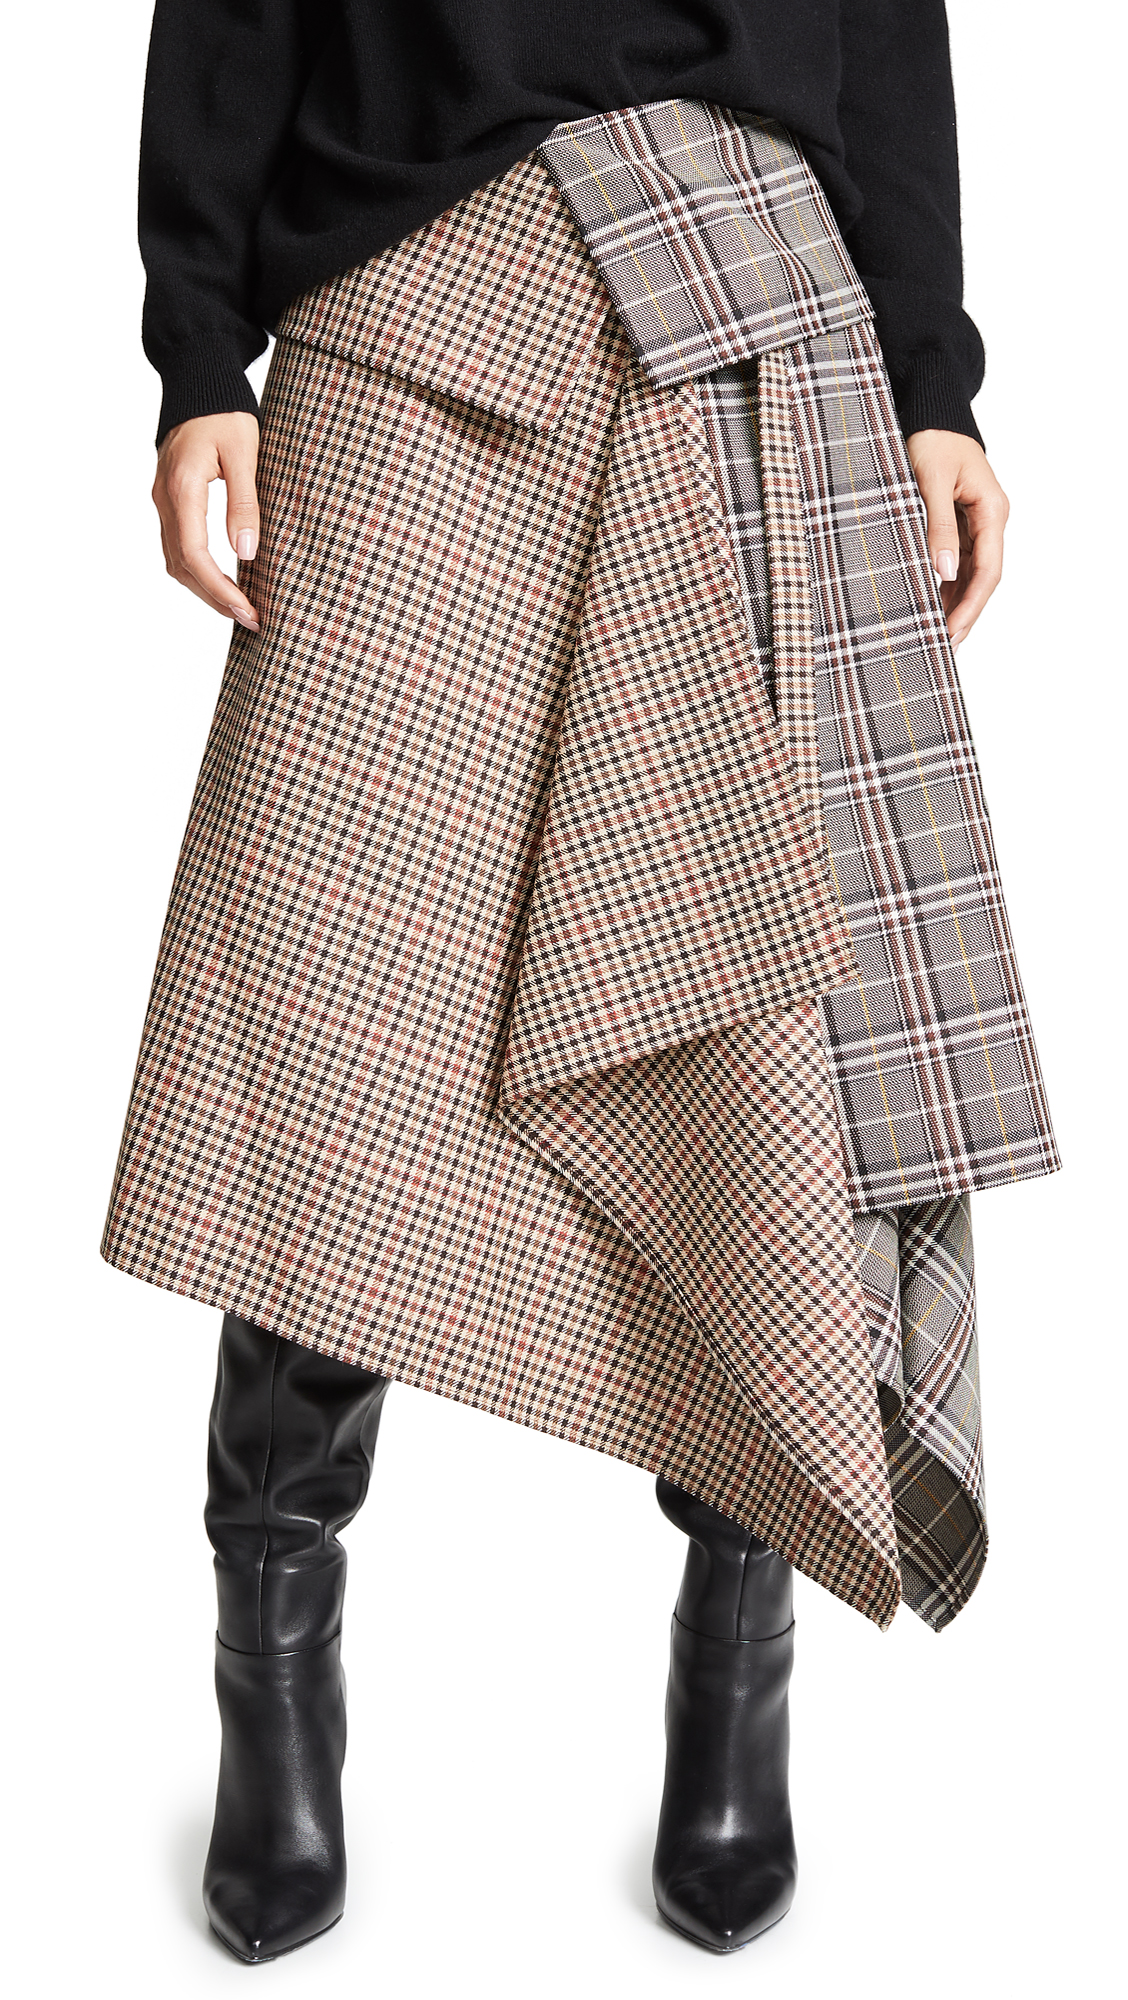 Asymmetric Paneled Checked Wool-Blend Midi Skirt, Plaid